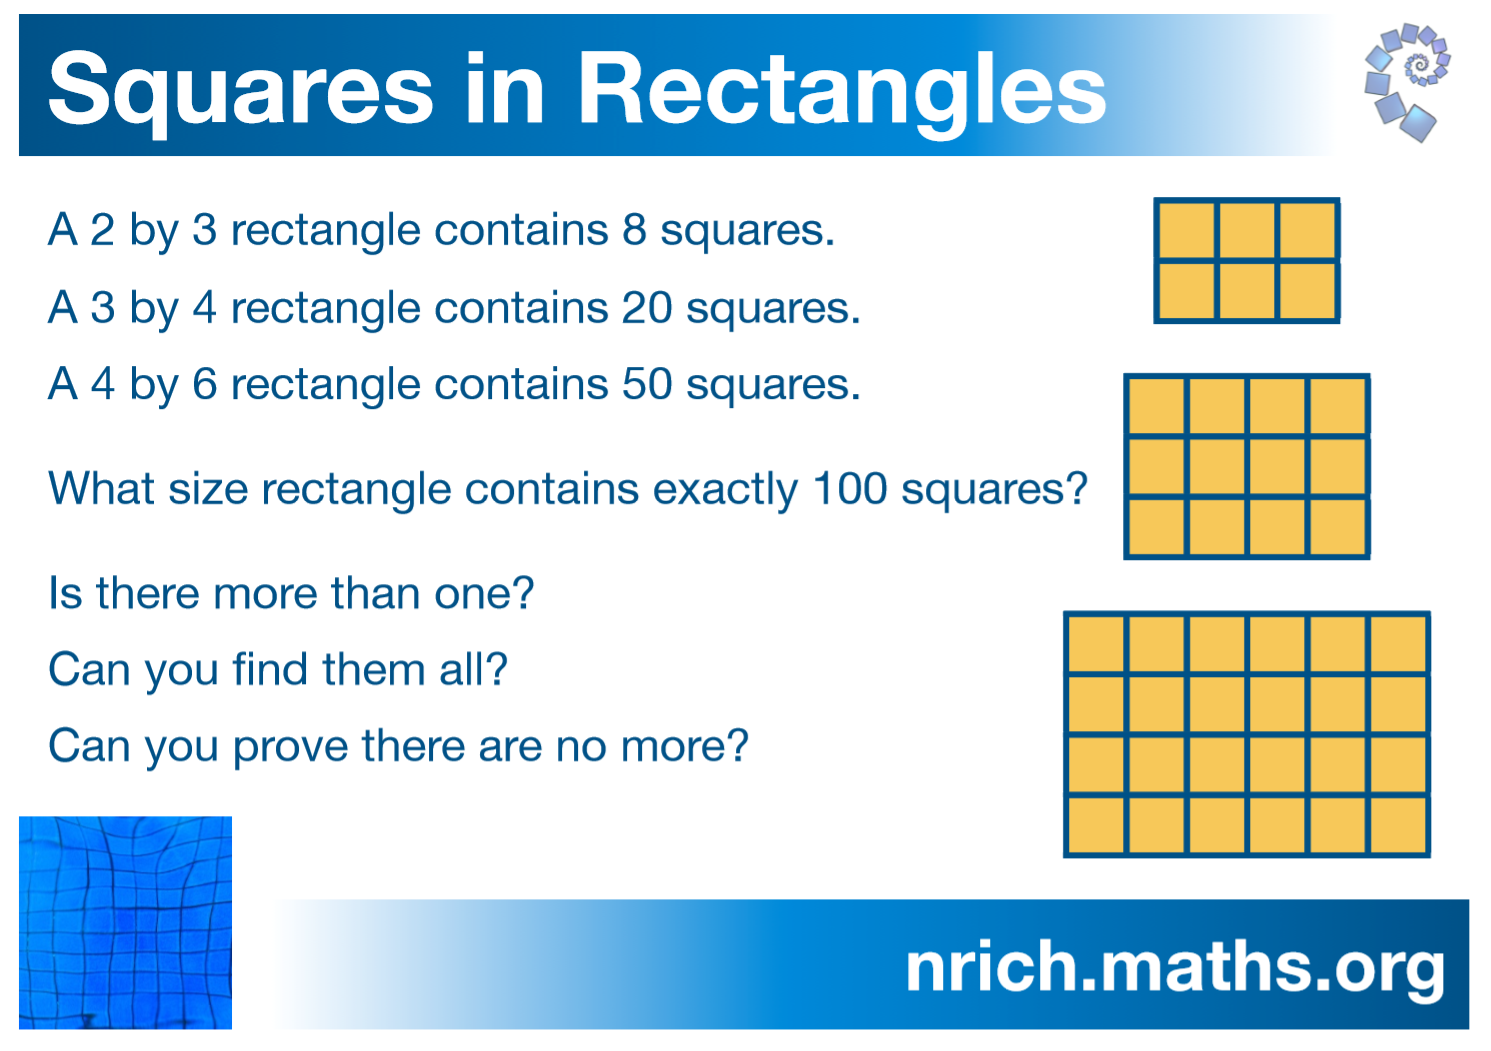 Squares in Rectangles Poster : nrich.maths.org